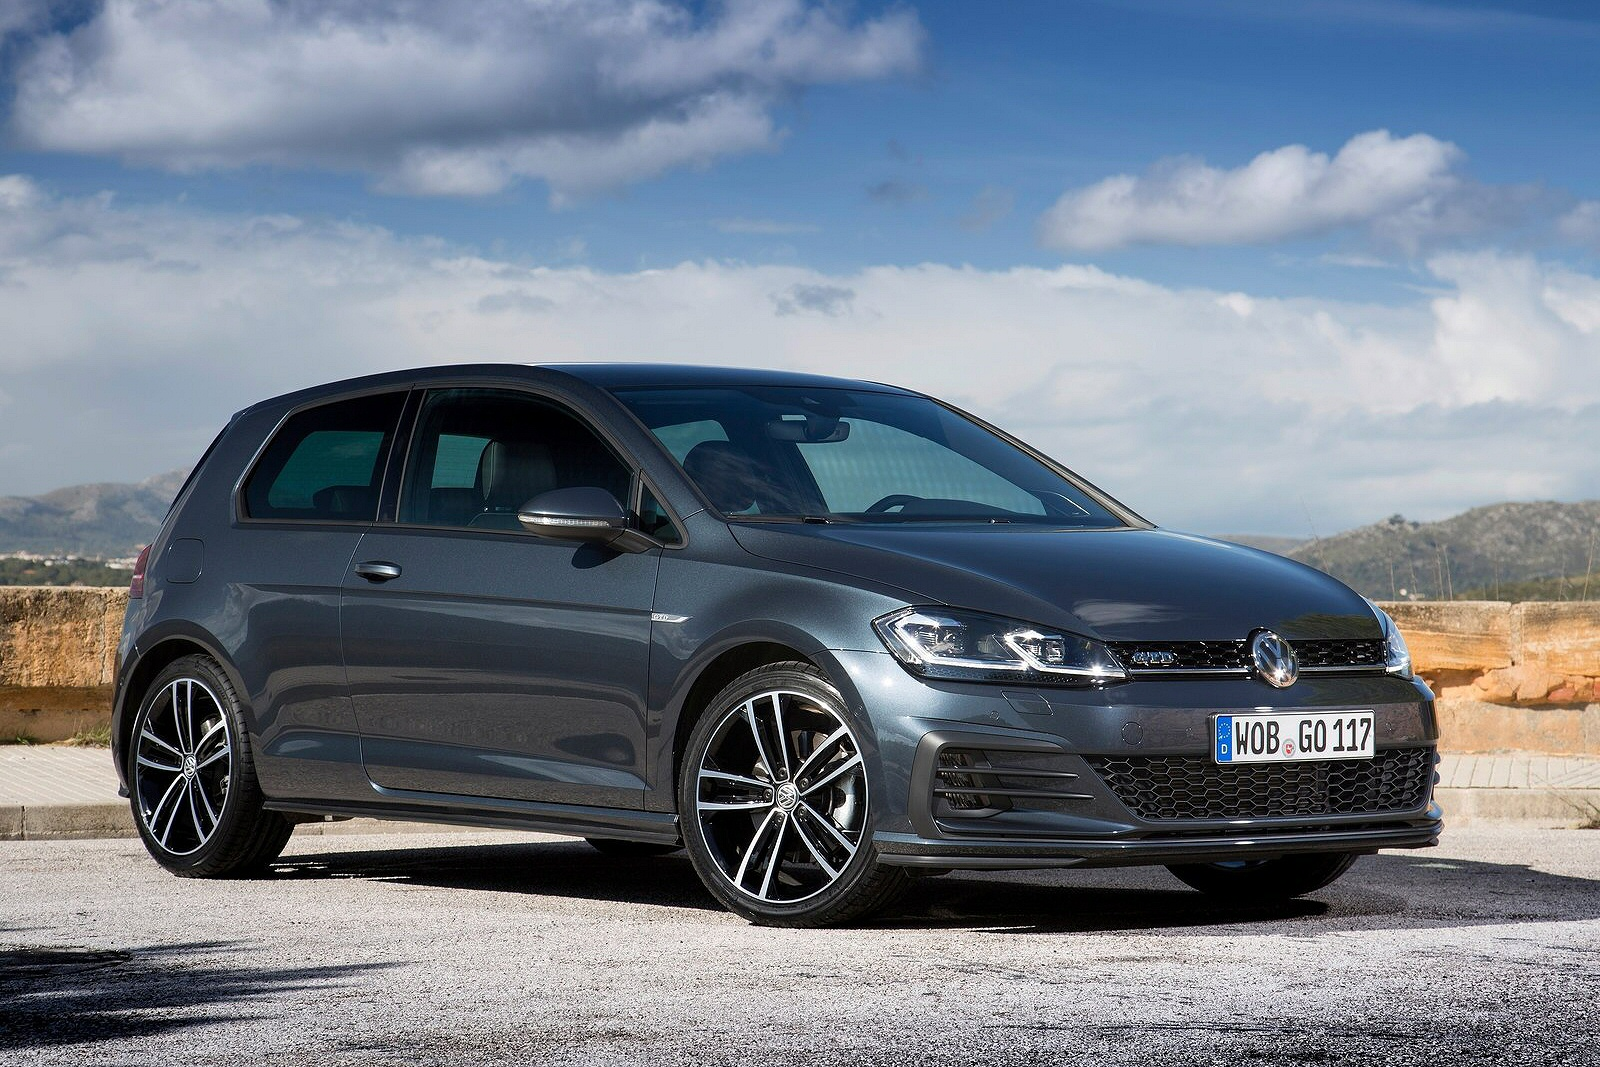 new volkswagen golf 2 0 tdi 184 gtd 5dr diesel hatchback. Black Bedroom Furniture Sets. Home Design Ideas